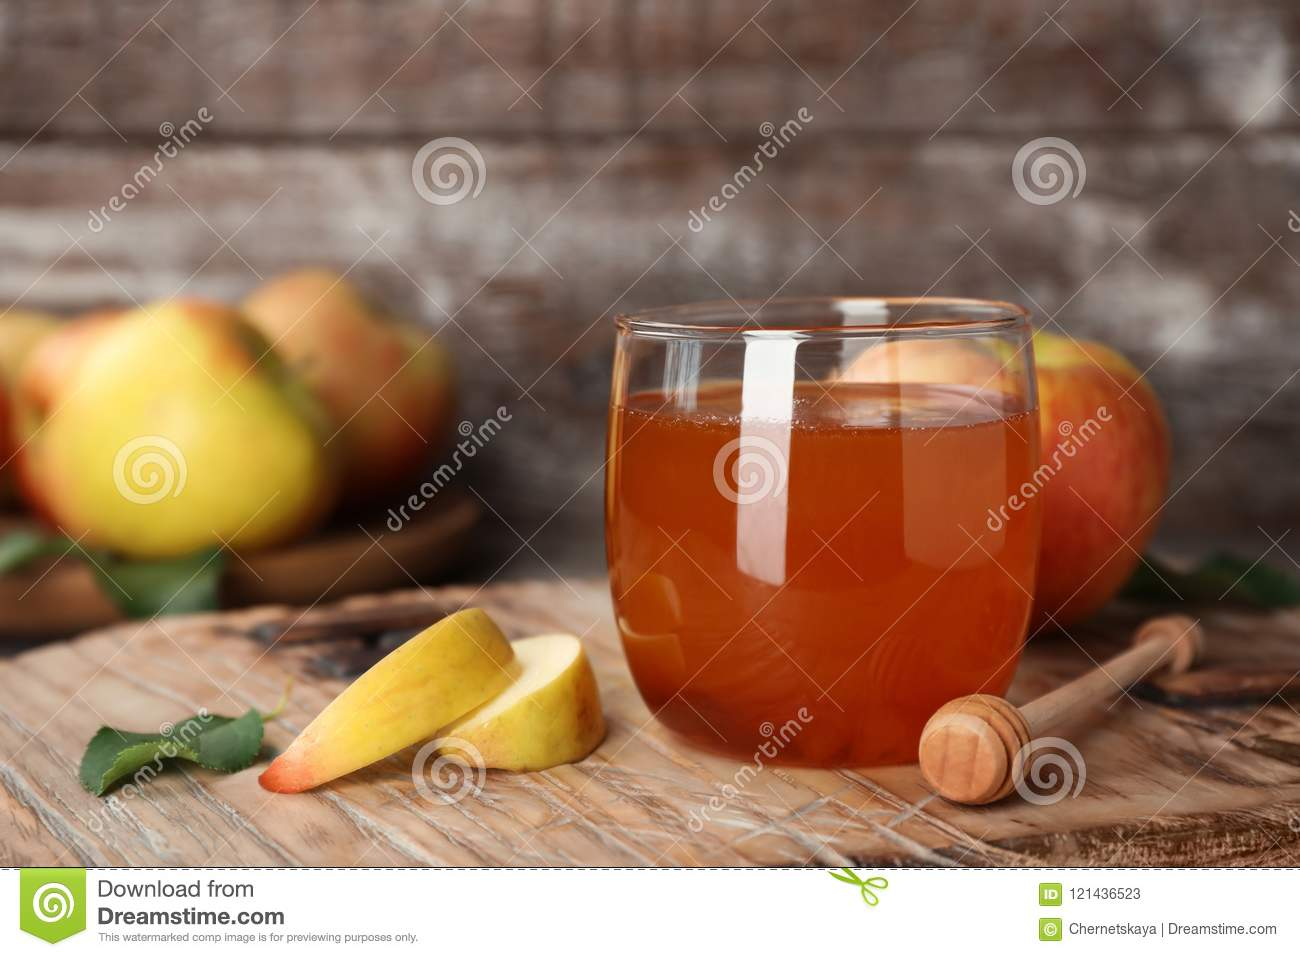 Glass of honey, apples and dipper